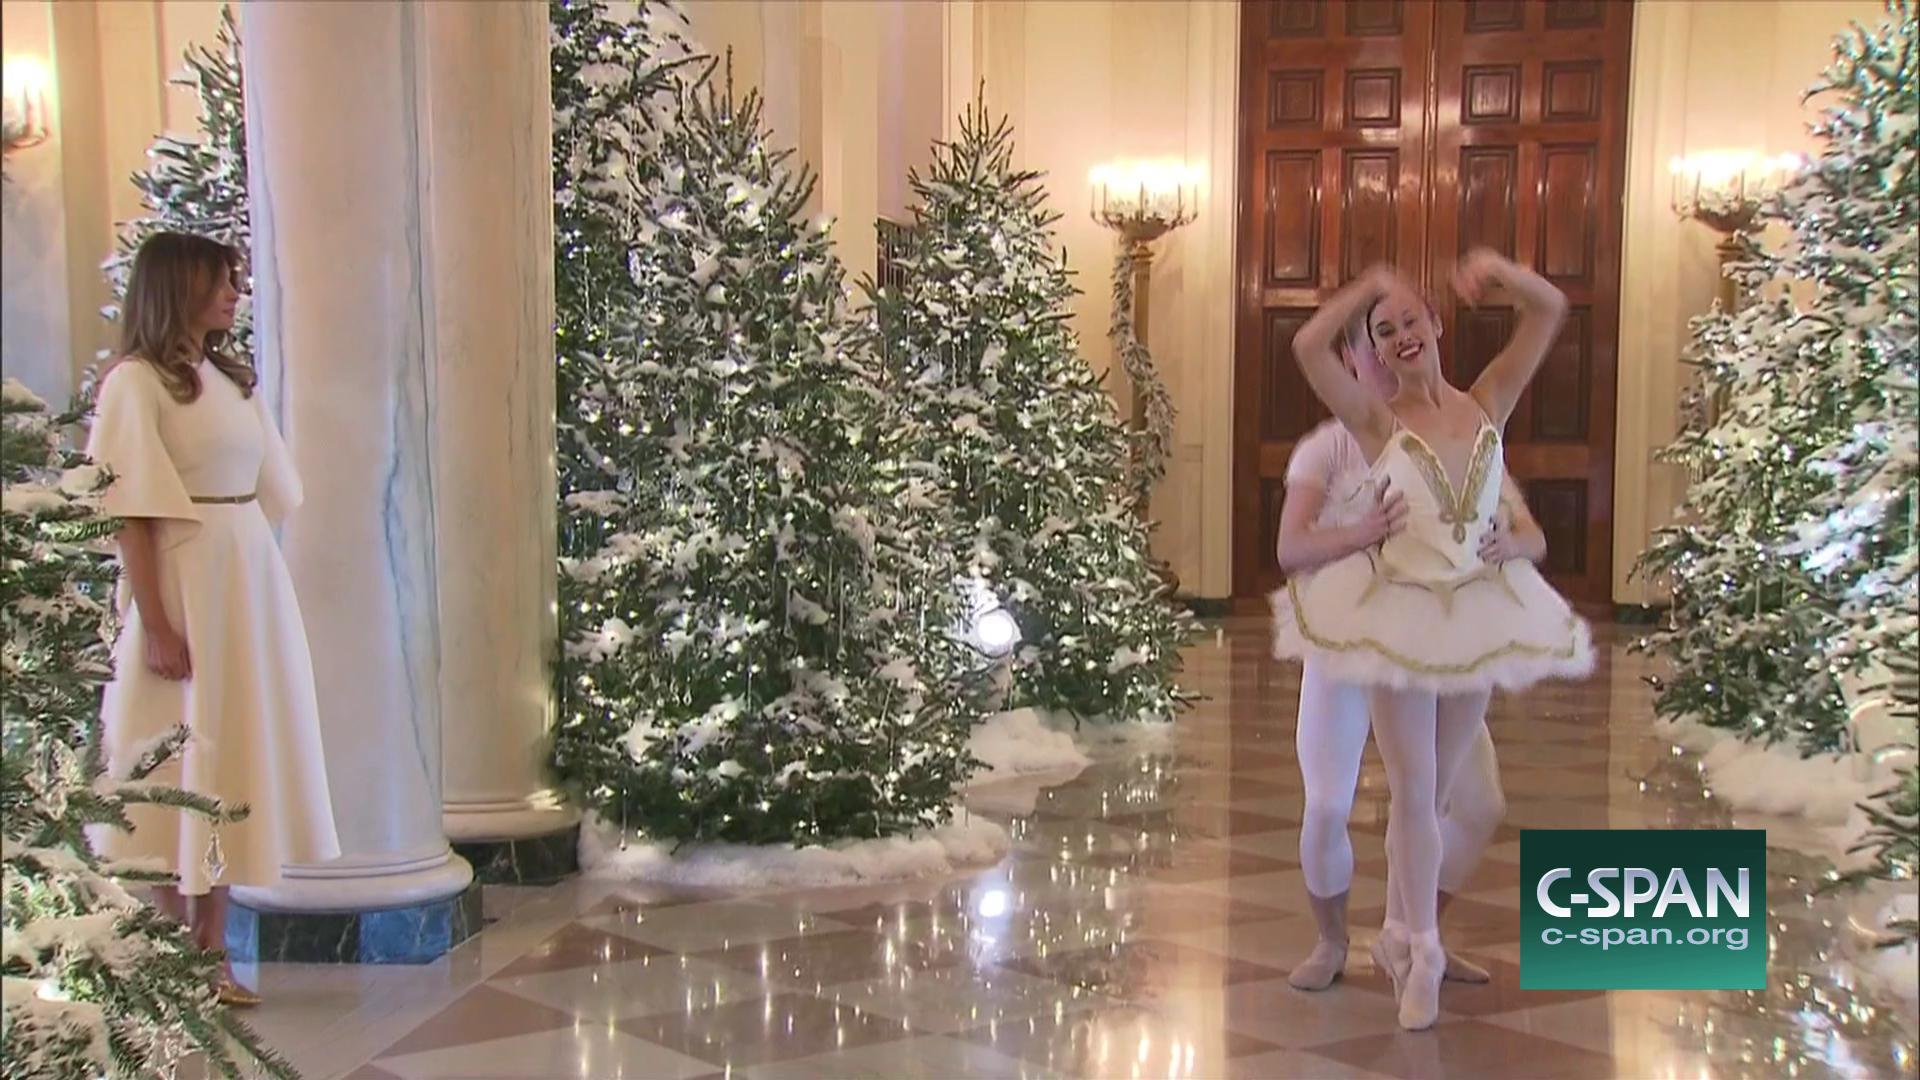 lady meets children making white house holiday decorations nov 27 2017 - 2017 White House Christmas Decorations